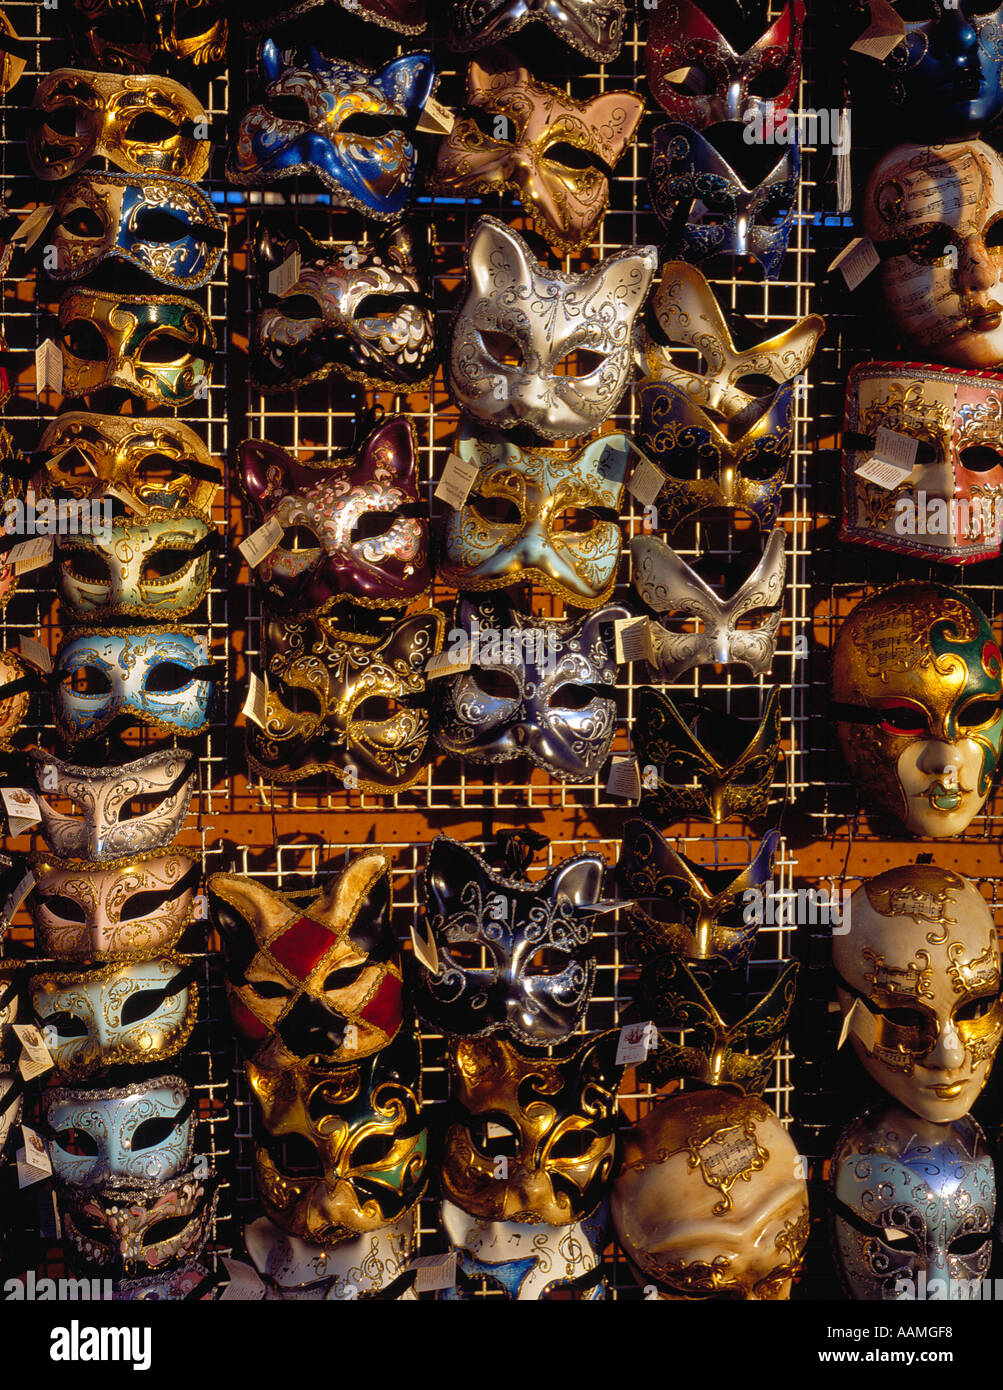 masks for sale in Venice Italy Europe. Photo by Willy Matheisl Stock Photo